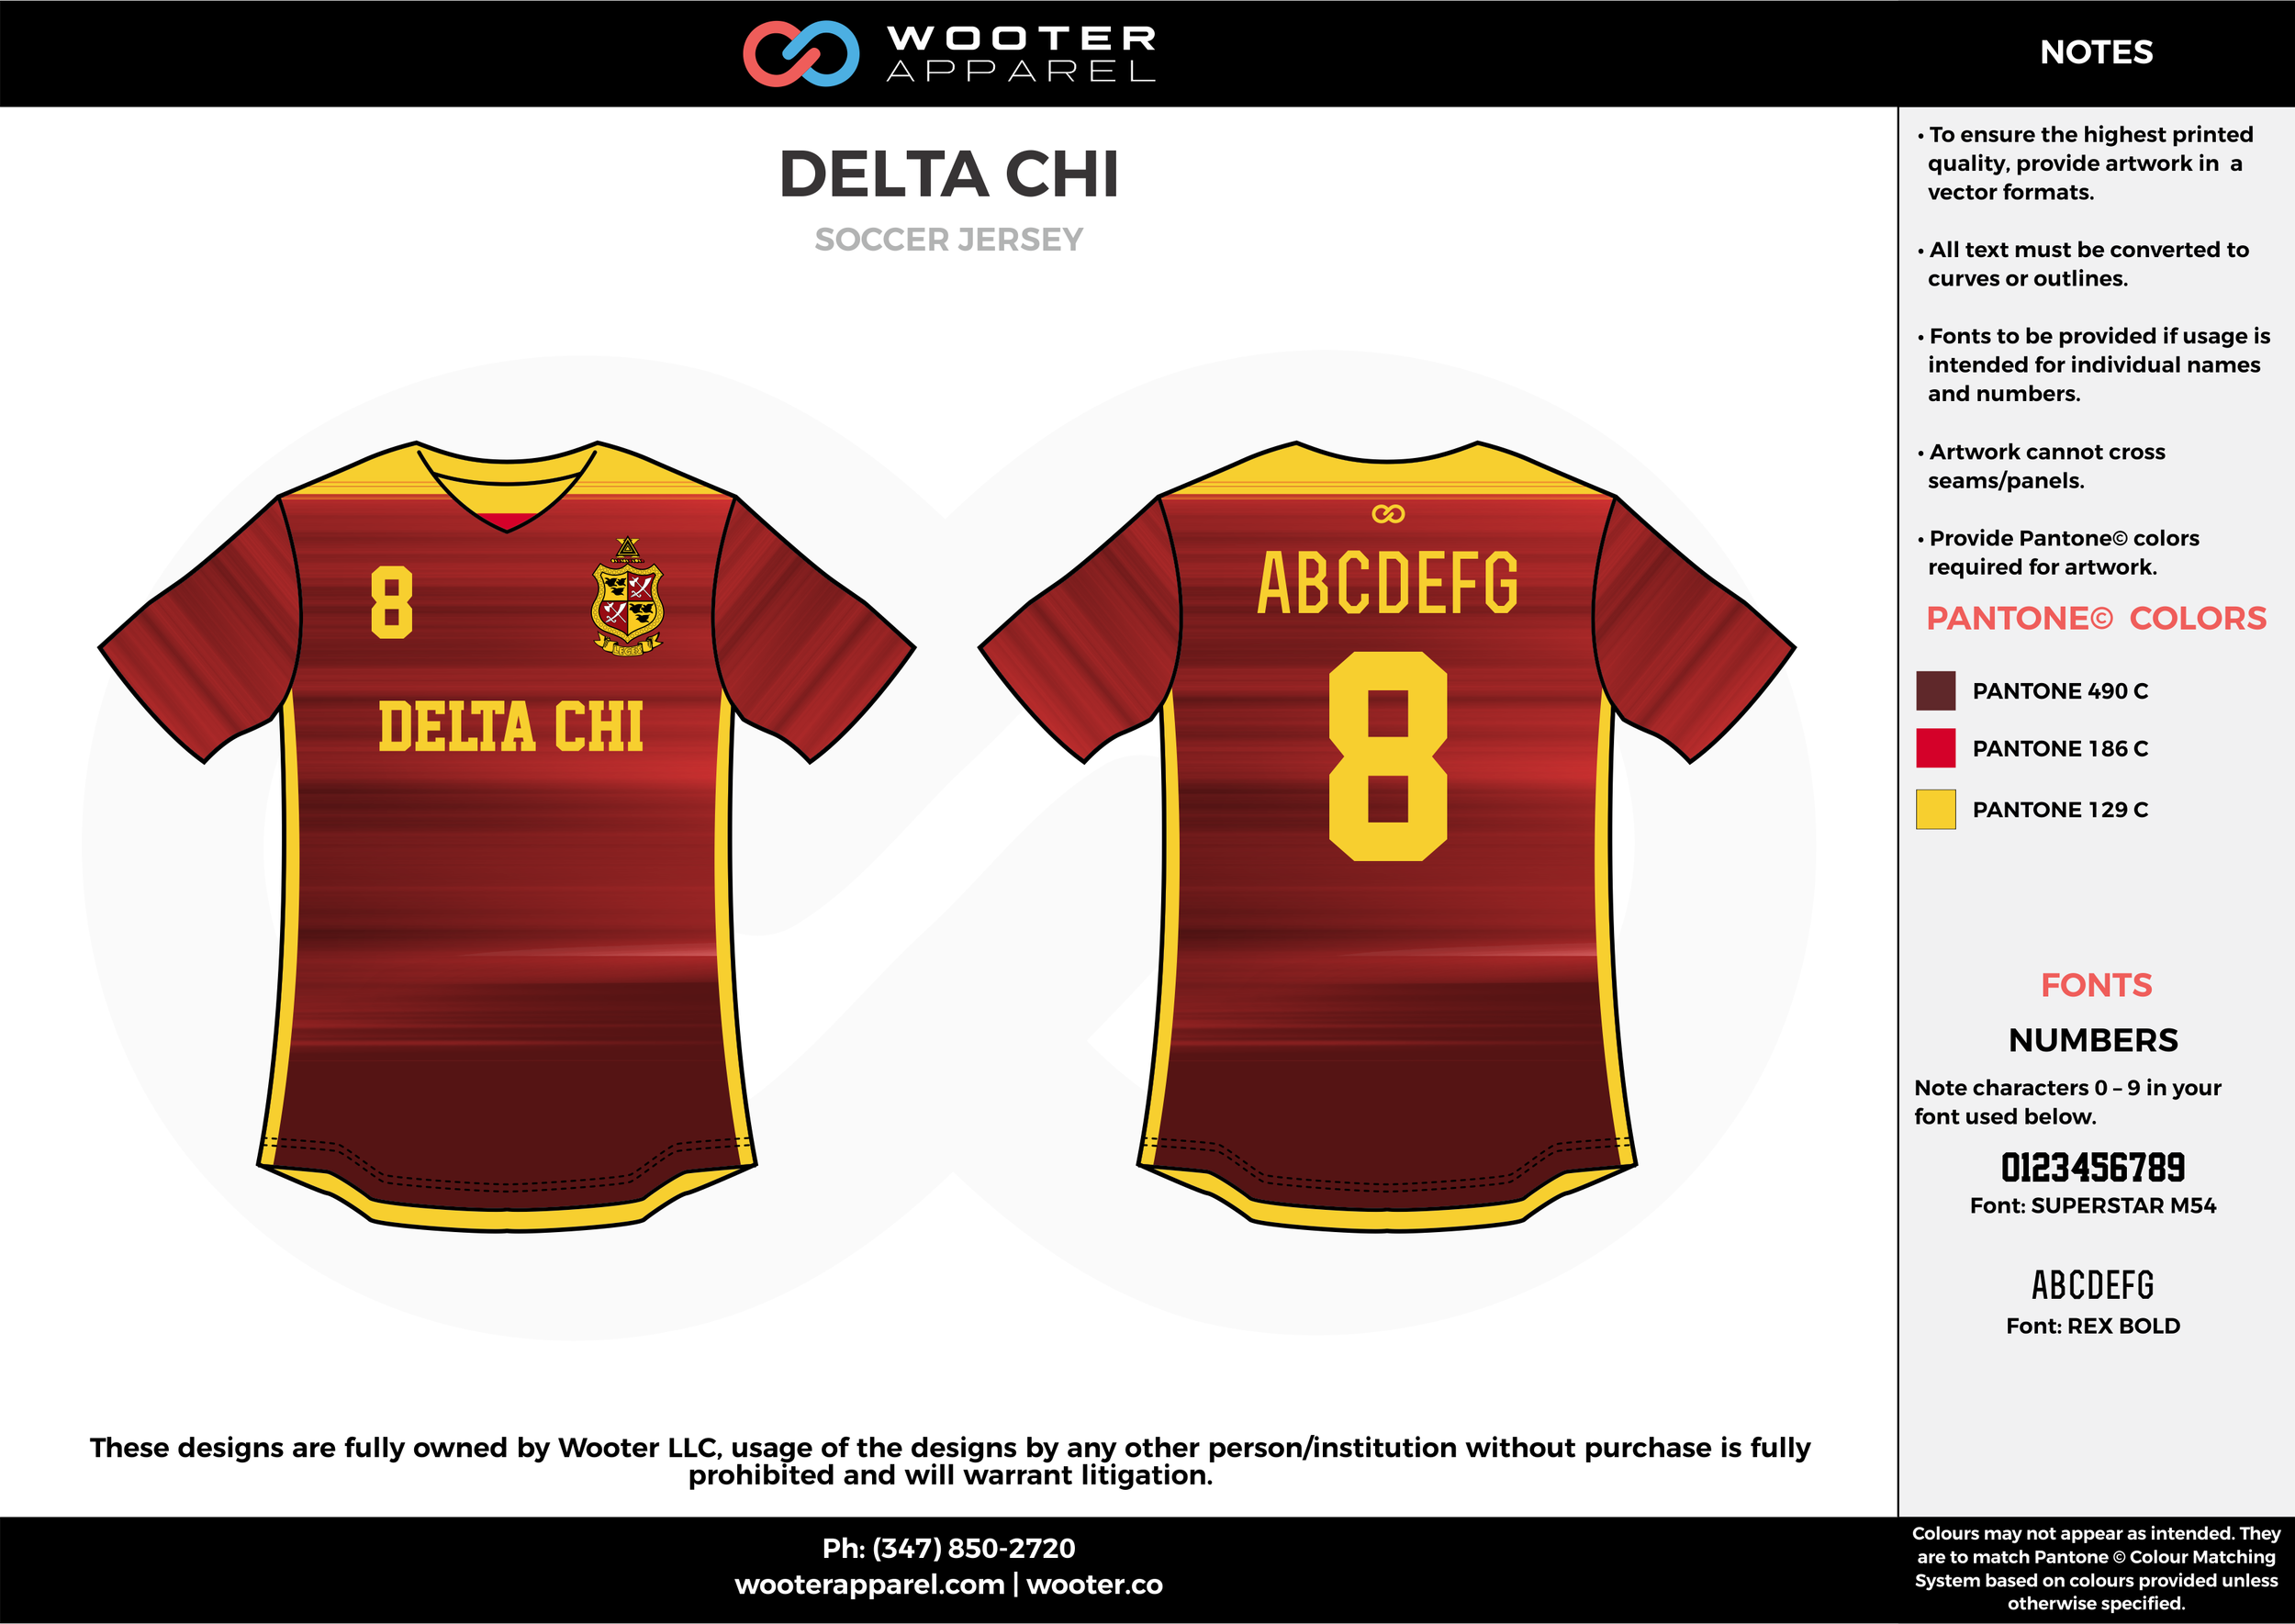 DELTA CHI wine red yellow custom sublimated soccer uniform jersey shirt